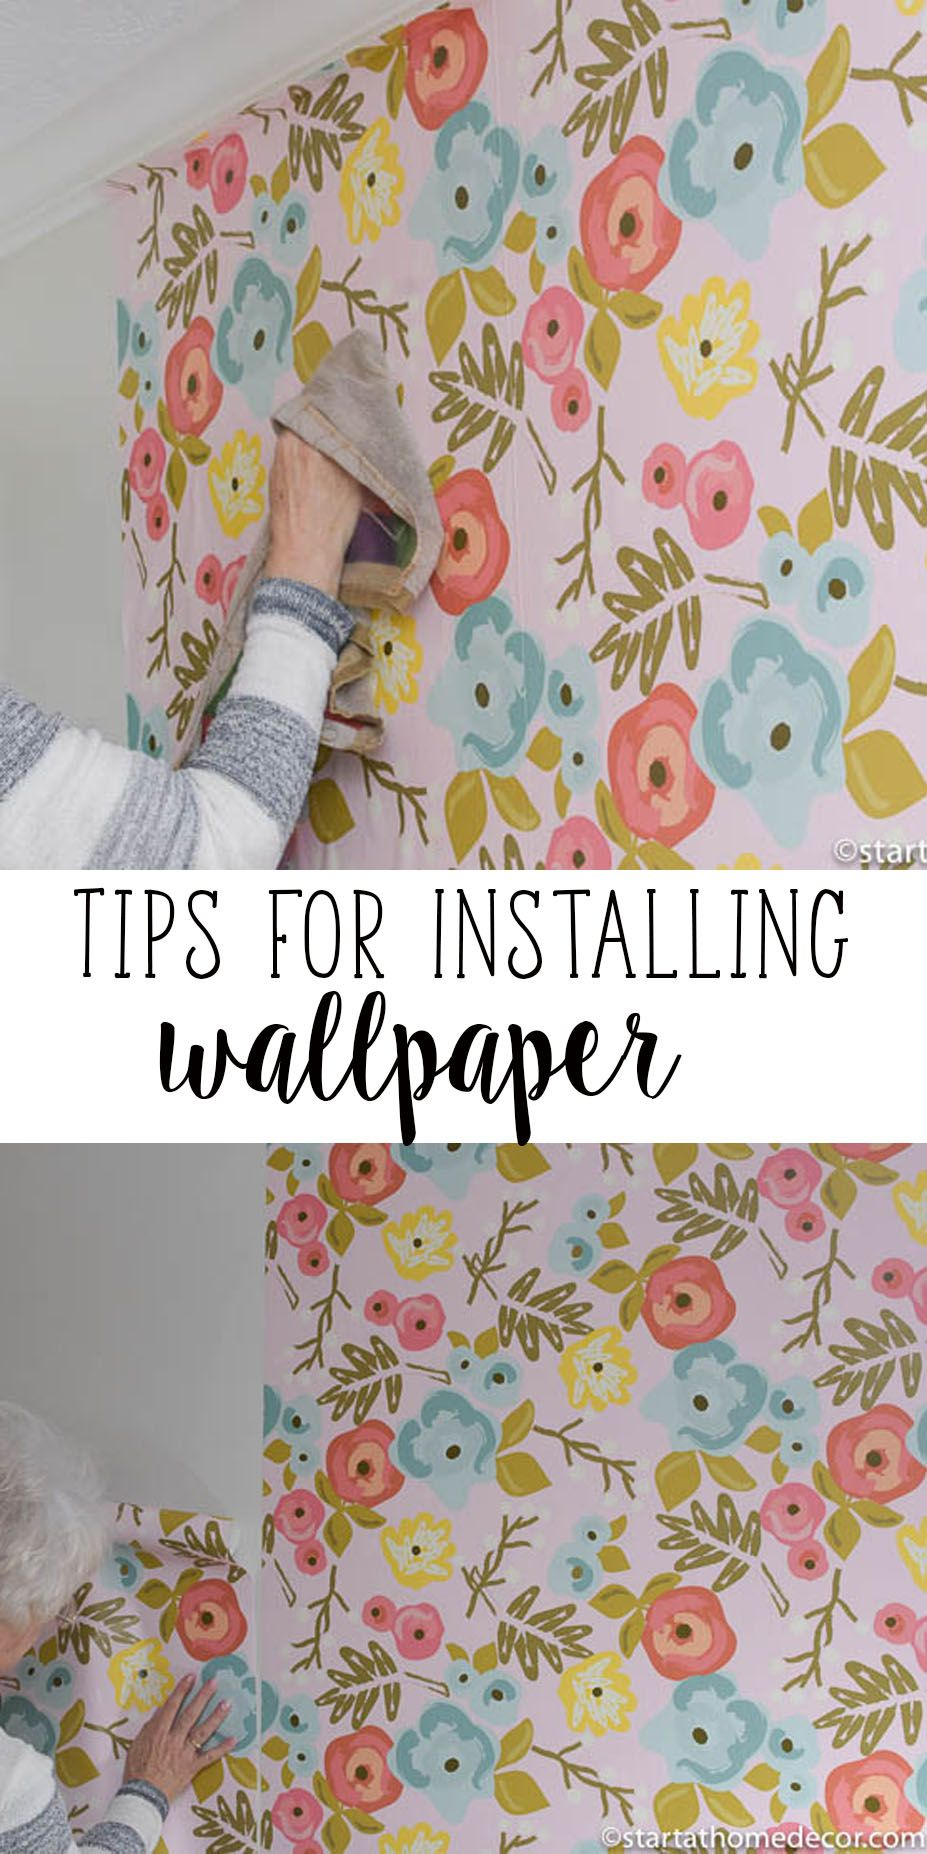 Great Tips For Installing Wallpaper Floral Wallpaper Floral Wallpaper Bedroom Vintage Flowers Wallpaper How To Hang Wallpaper